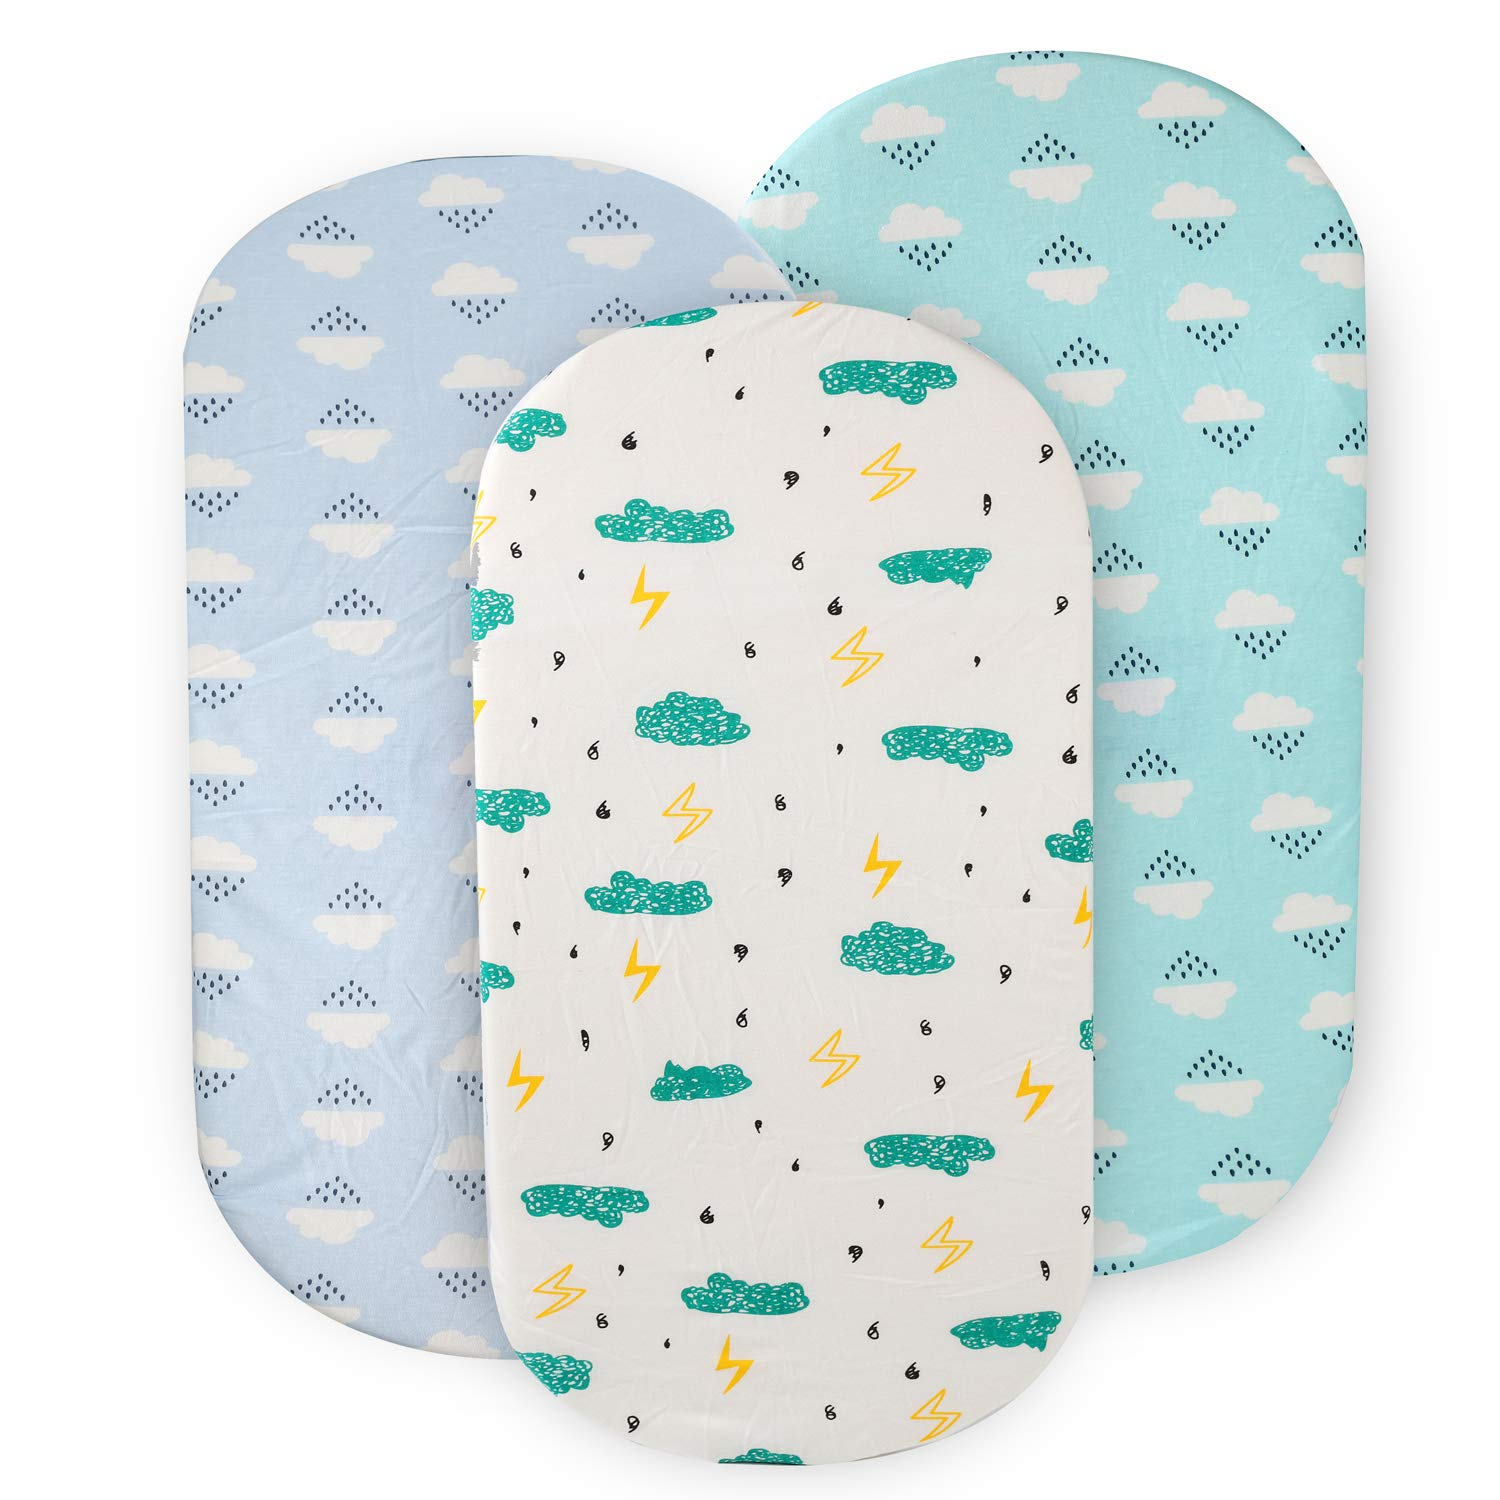 Bassinet Sheet Set 3 Pack 100% Jersey Cotton Super Soft for Baby Boy/Girl, Fitted Sheet for Oval, Rectangle or Hourglass Bassinet Mattress, Cloud and Raindrop Print, White Blue and Green